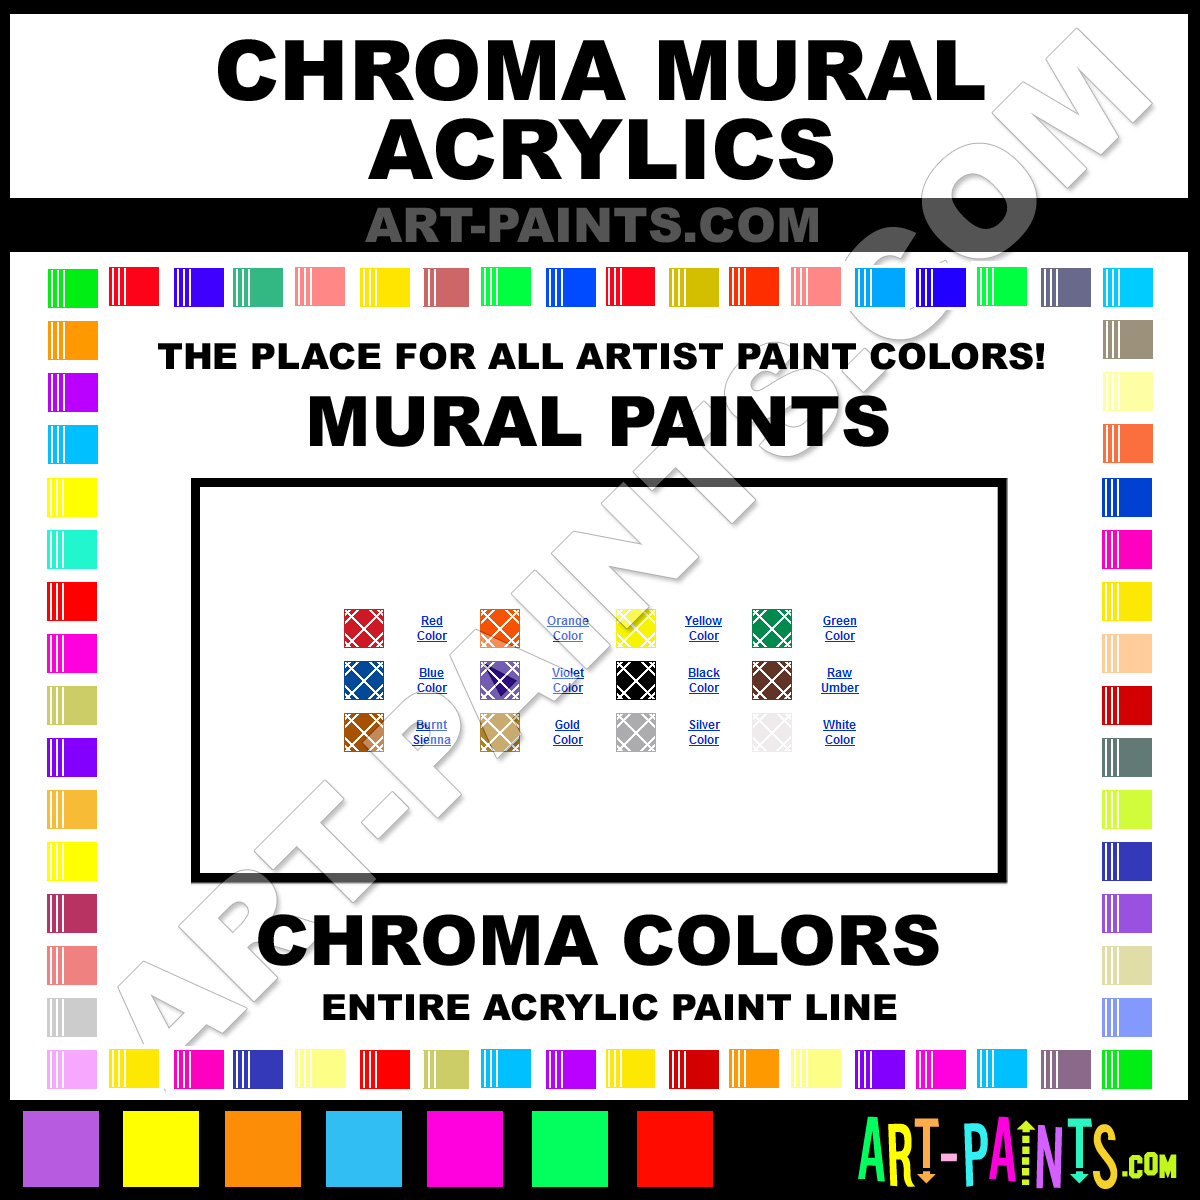 Chroma mural acrylic paint colors chroma mural paint for Chroma mural paint